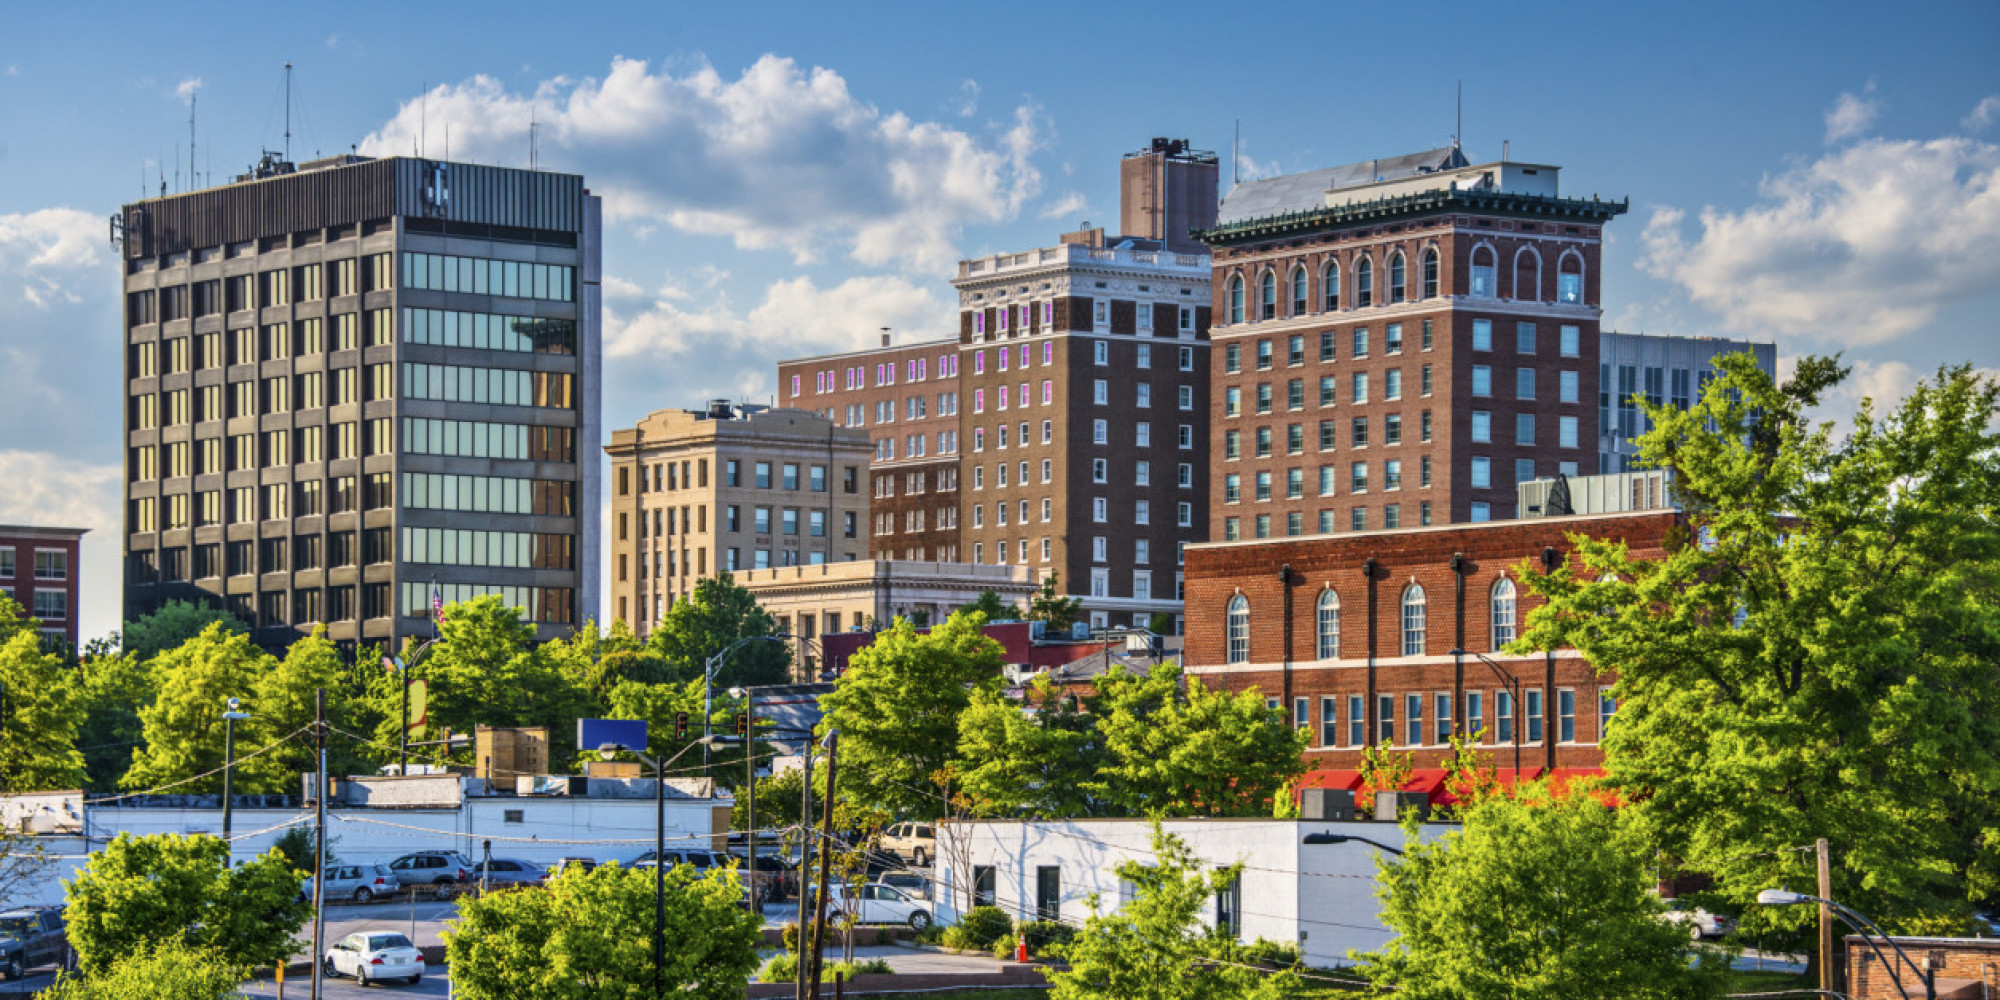 9 reasons not to visit or move to greenville south carolina in